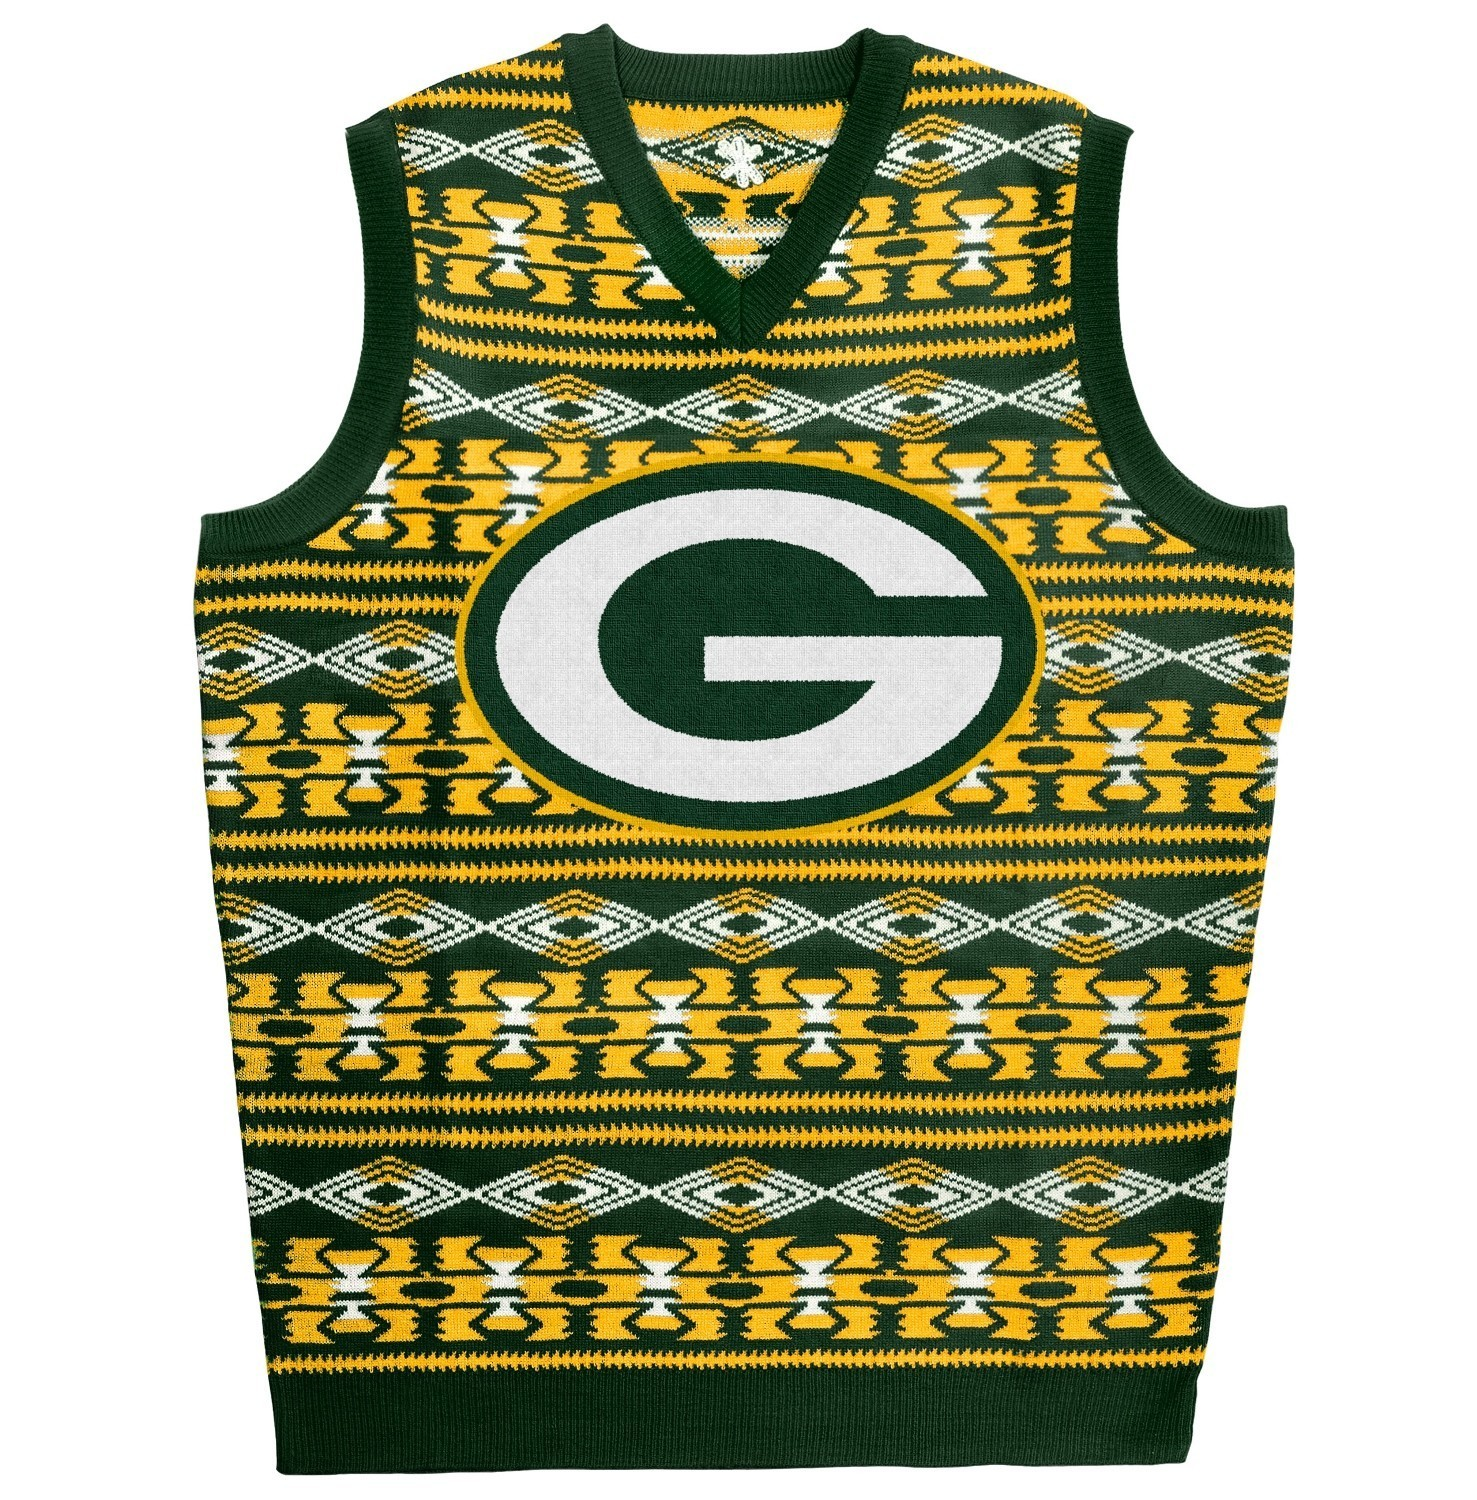 247c0d29 Details about Green Bay Packers Men's NFL